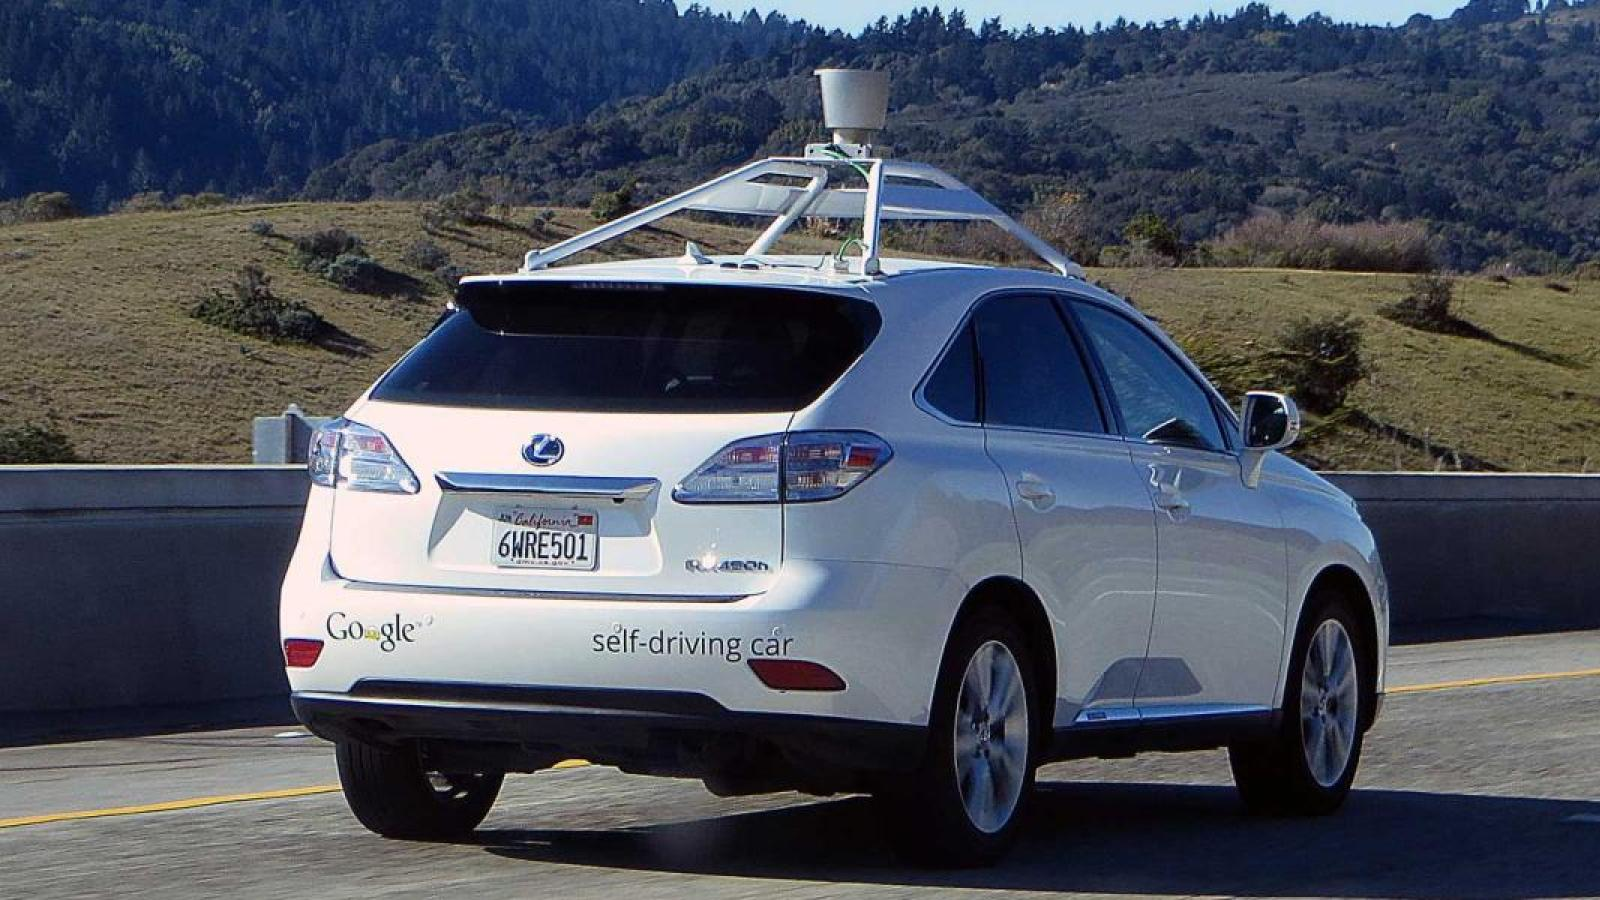 A Google self-driving car with lidar on top, cruising the interstate in California.